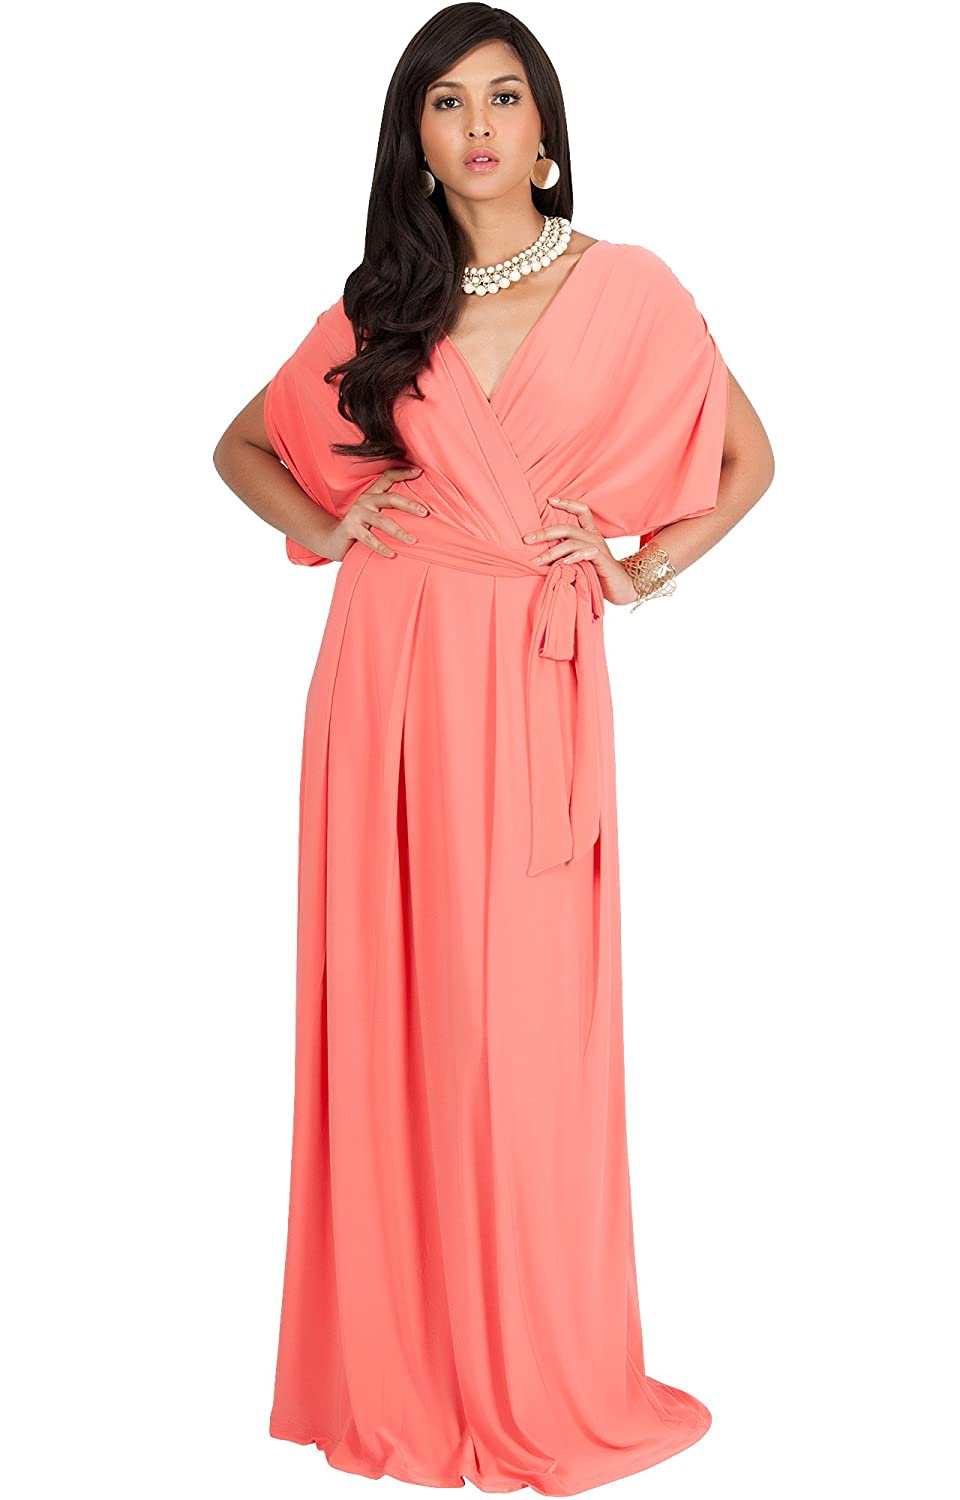 Koh koh womens long formal short sleeve cocktail flowy v neck gown koh koh womens long formal short sleeve cocktail flowy v neck gown maxi dress at amazon womens clothing store ombrellifo Gallery